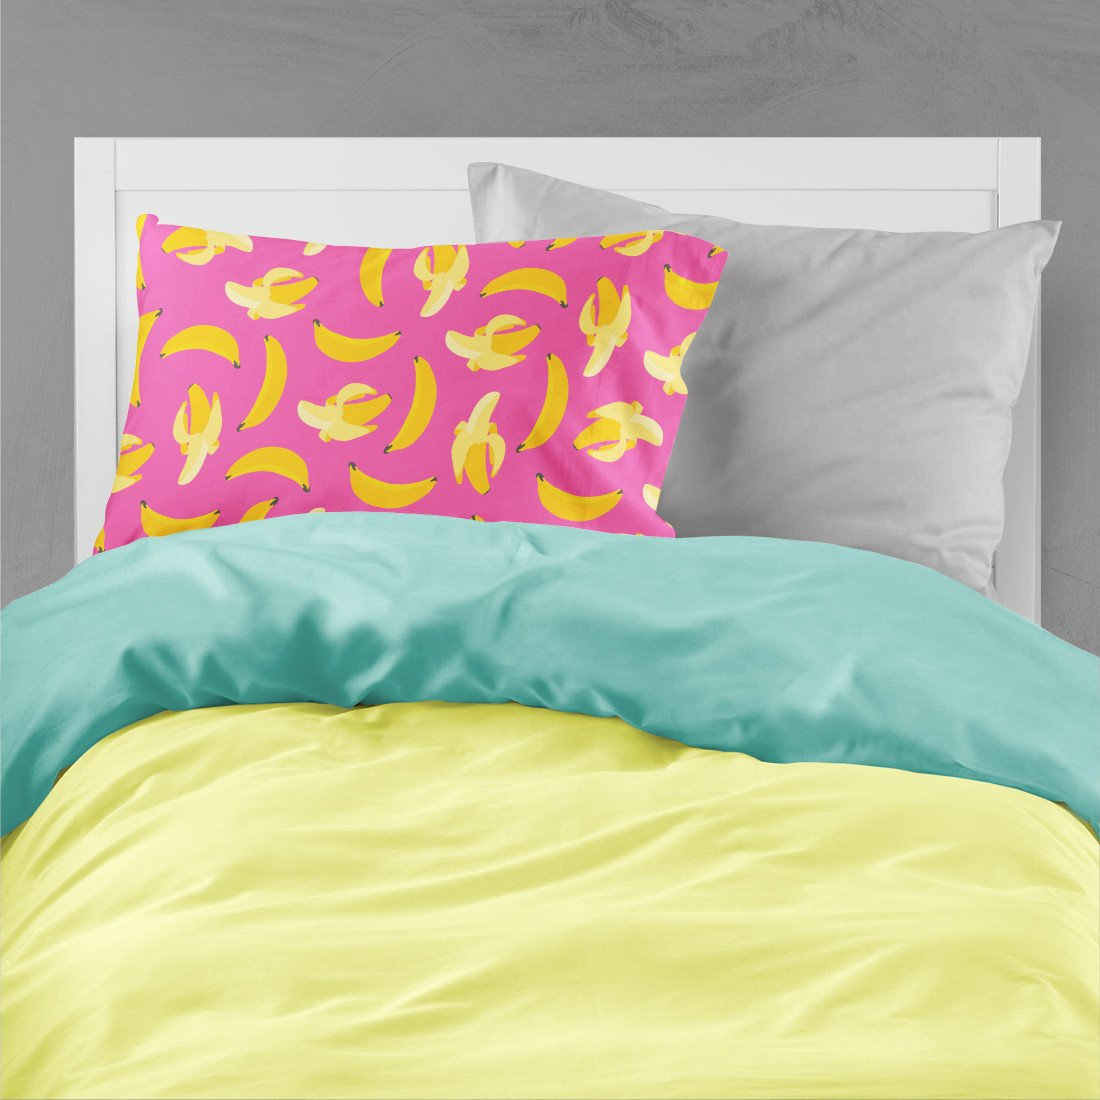 Bananas on Pink Fabric Standard Pillowcase BB5140PILLOWCASE by Caroline's Treasures